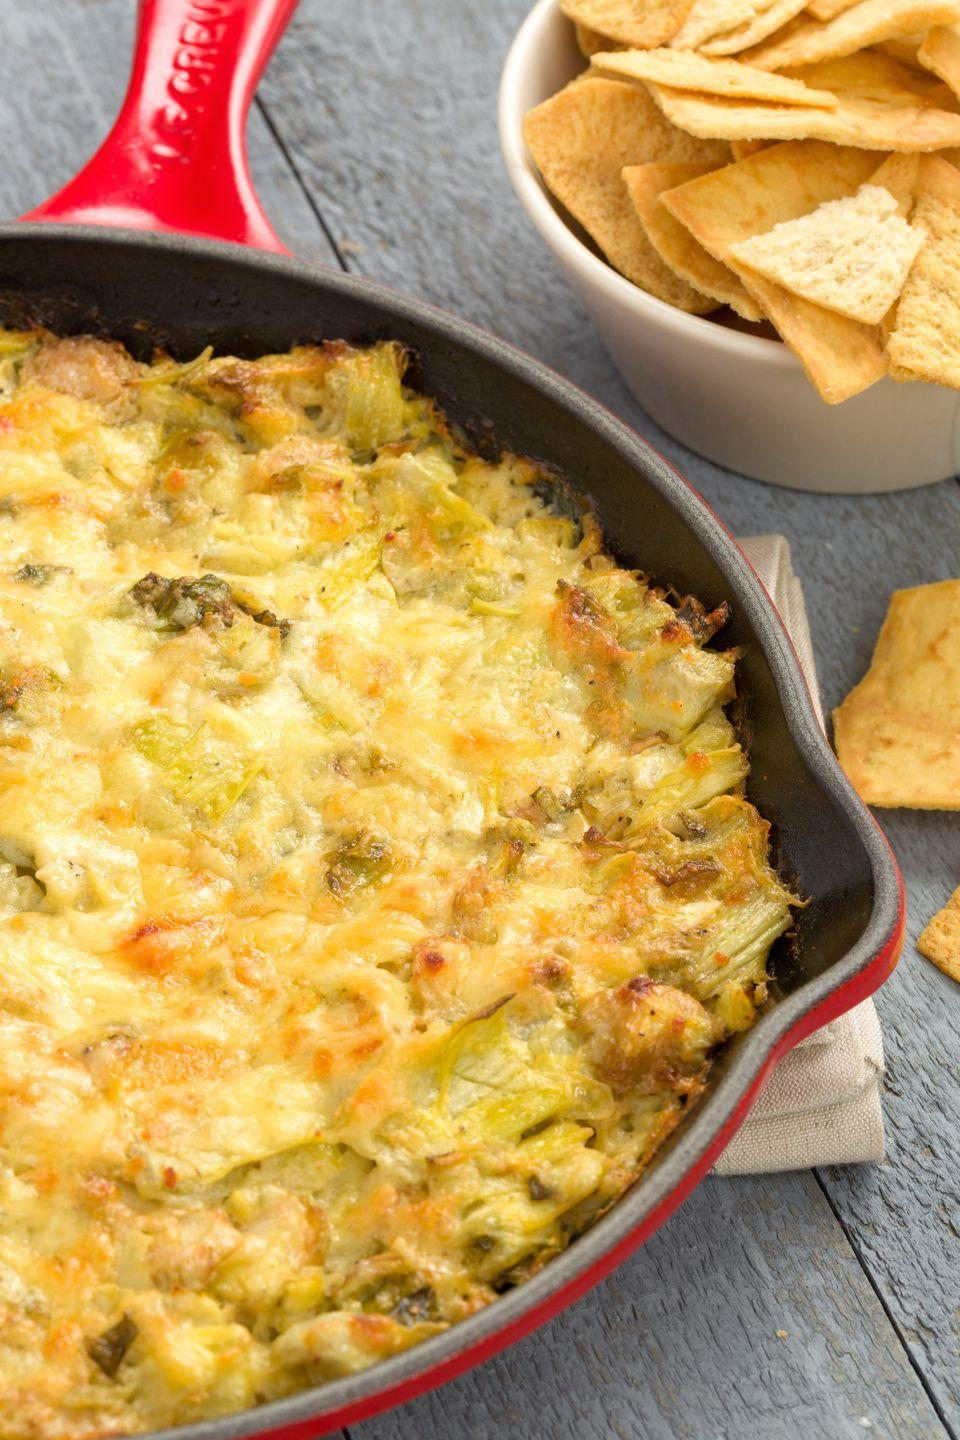 """<p>Replace spinach with brussels sprouts and you've taken your basic dip to the next level.</p><p>Get the recipe from <a href=""""https://www.delish.com/holiday-recipes/thanksgiving/recipes/a44805/cheesy-brussels-sprout-artichoke-dip-recipe/"""" rel=""""nofollow noopener"""" target=""""_blank"""" data-ylk=""""slk:Delish"""" class=""""link rapid-noclick-resp"""">Delish</a>.</p>"""